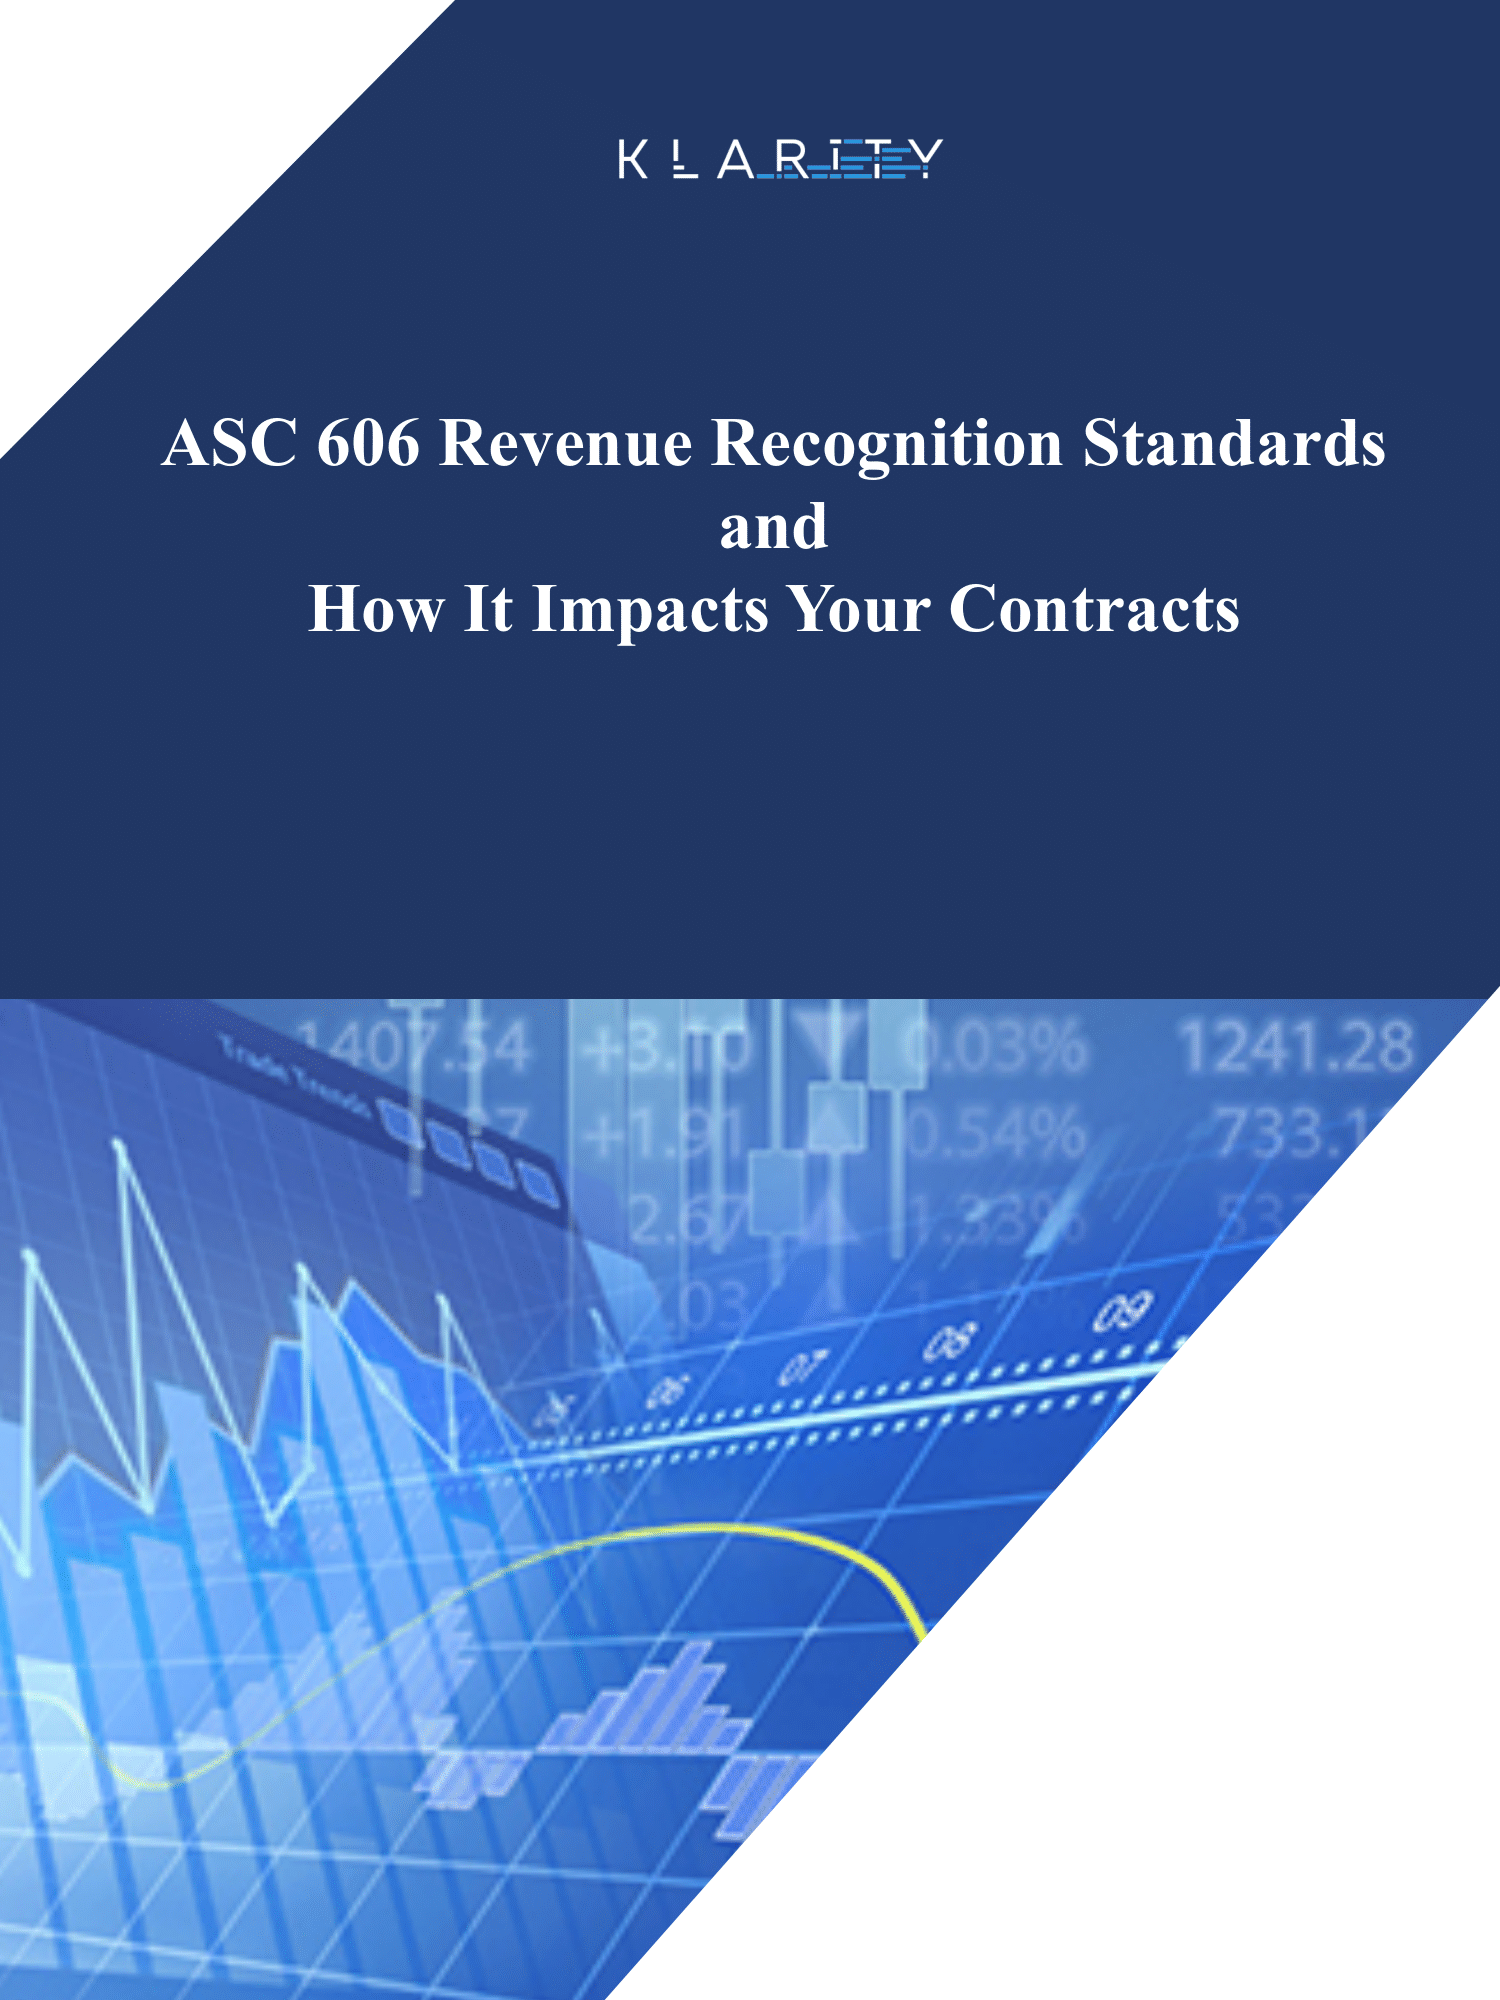 ASC_606_Revenue_Recognition_Klarity-1.png